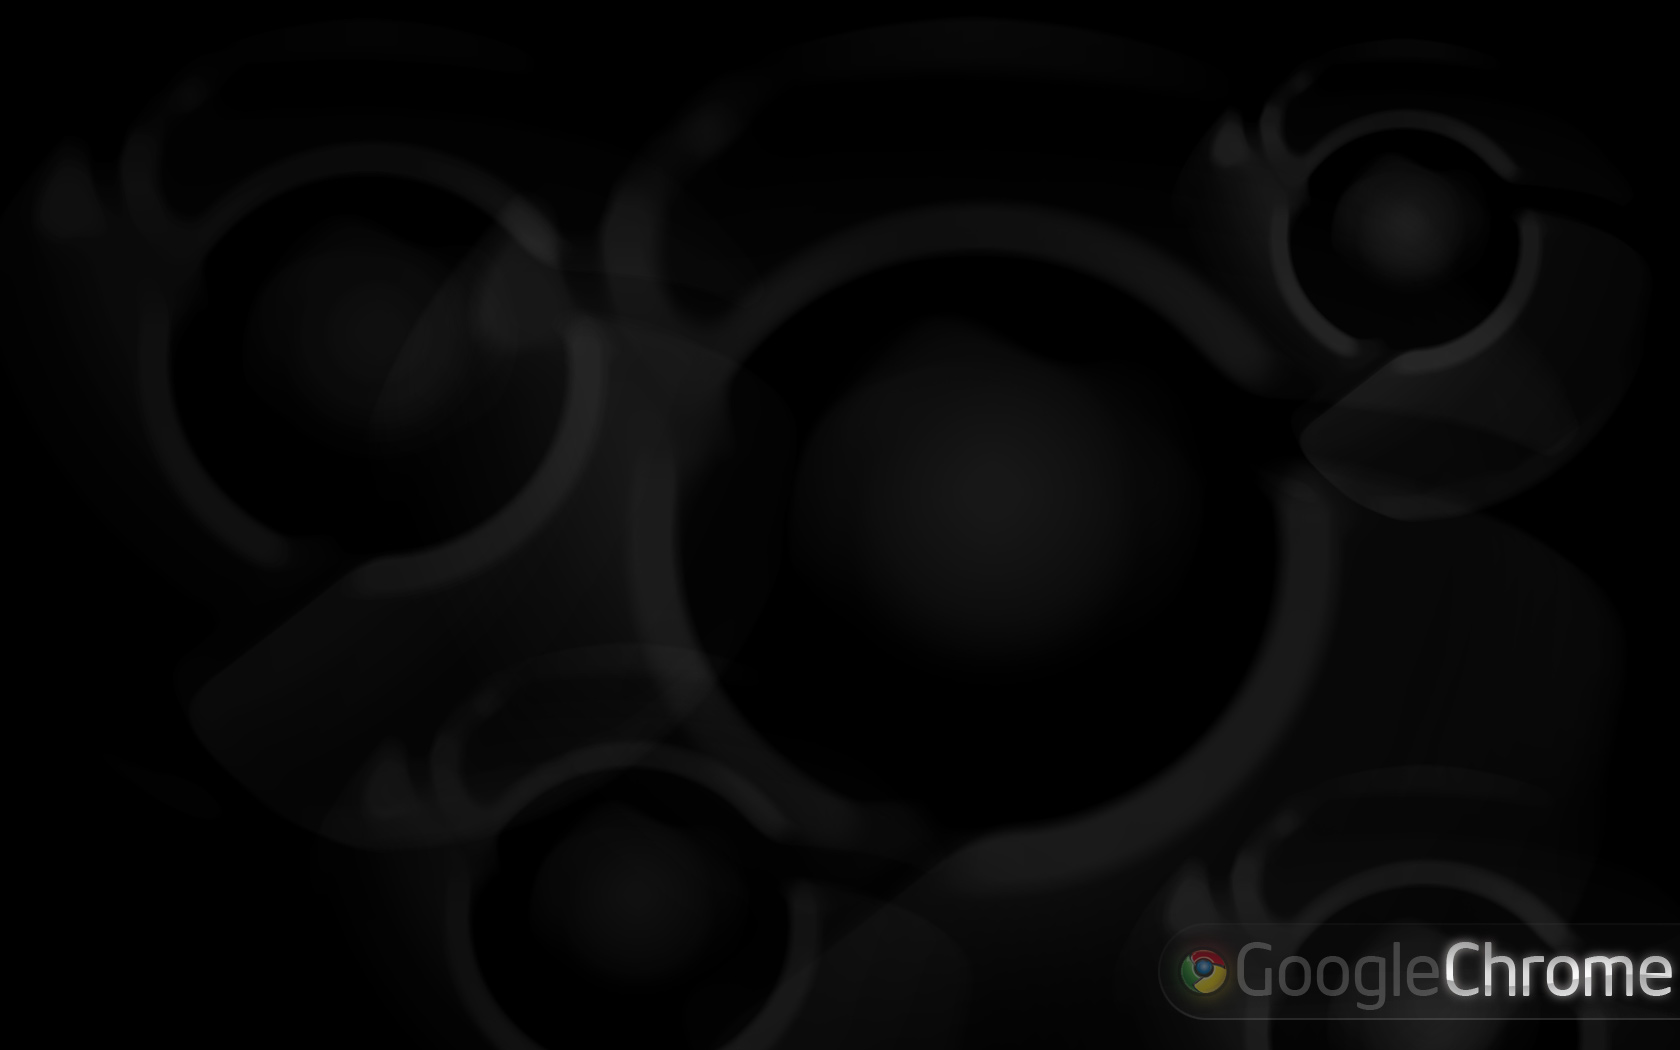 Google Chrome Wallpaper And Background Image 1680x1050 Id